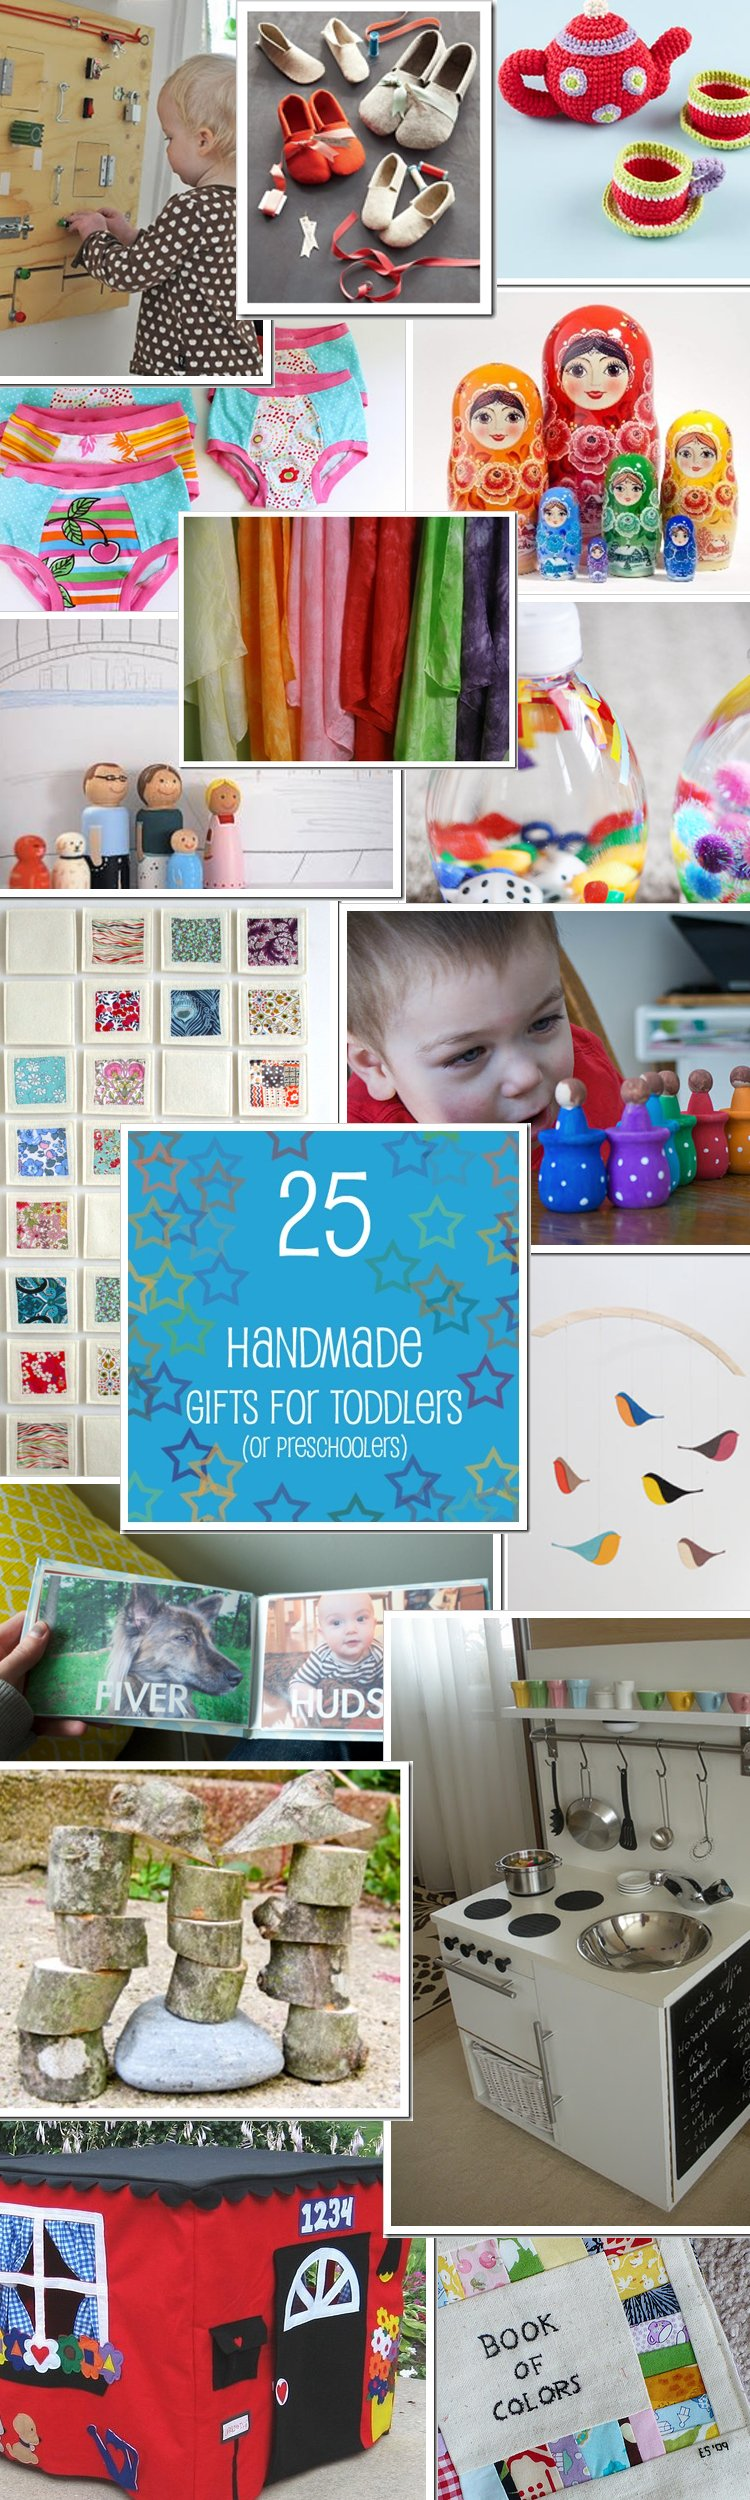 25 handmade gifts to make for toddlers or preschoolers - this is an awesome list with links to all of the tutorials!